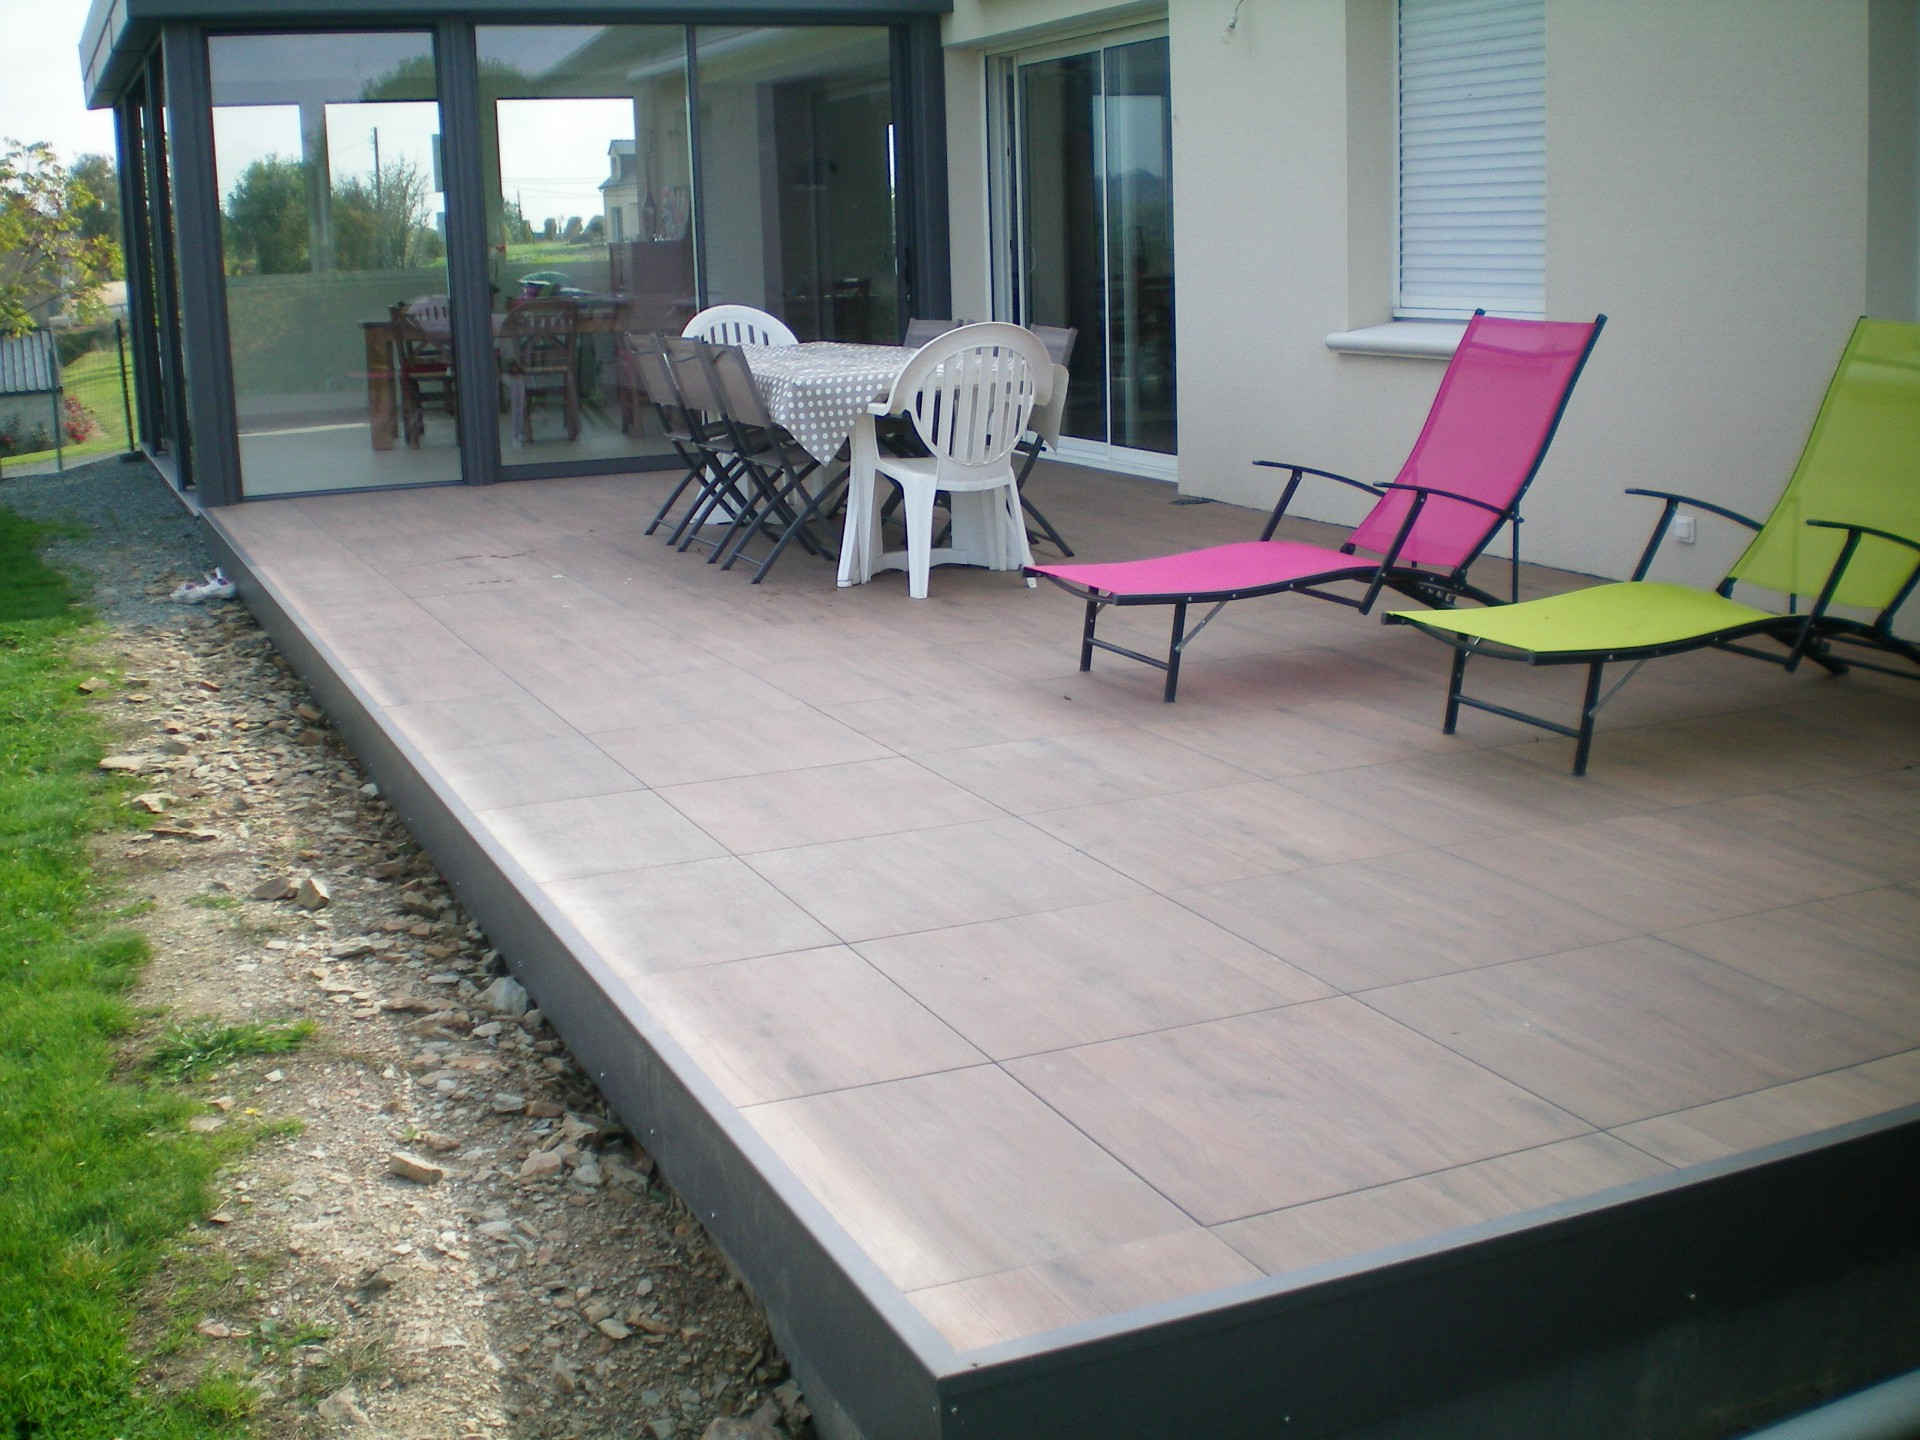 Carrelage design carrelage sur plot moderne design for Pose carrelage terrasse sur plots